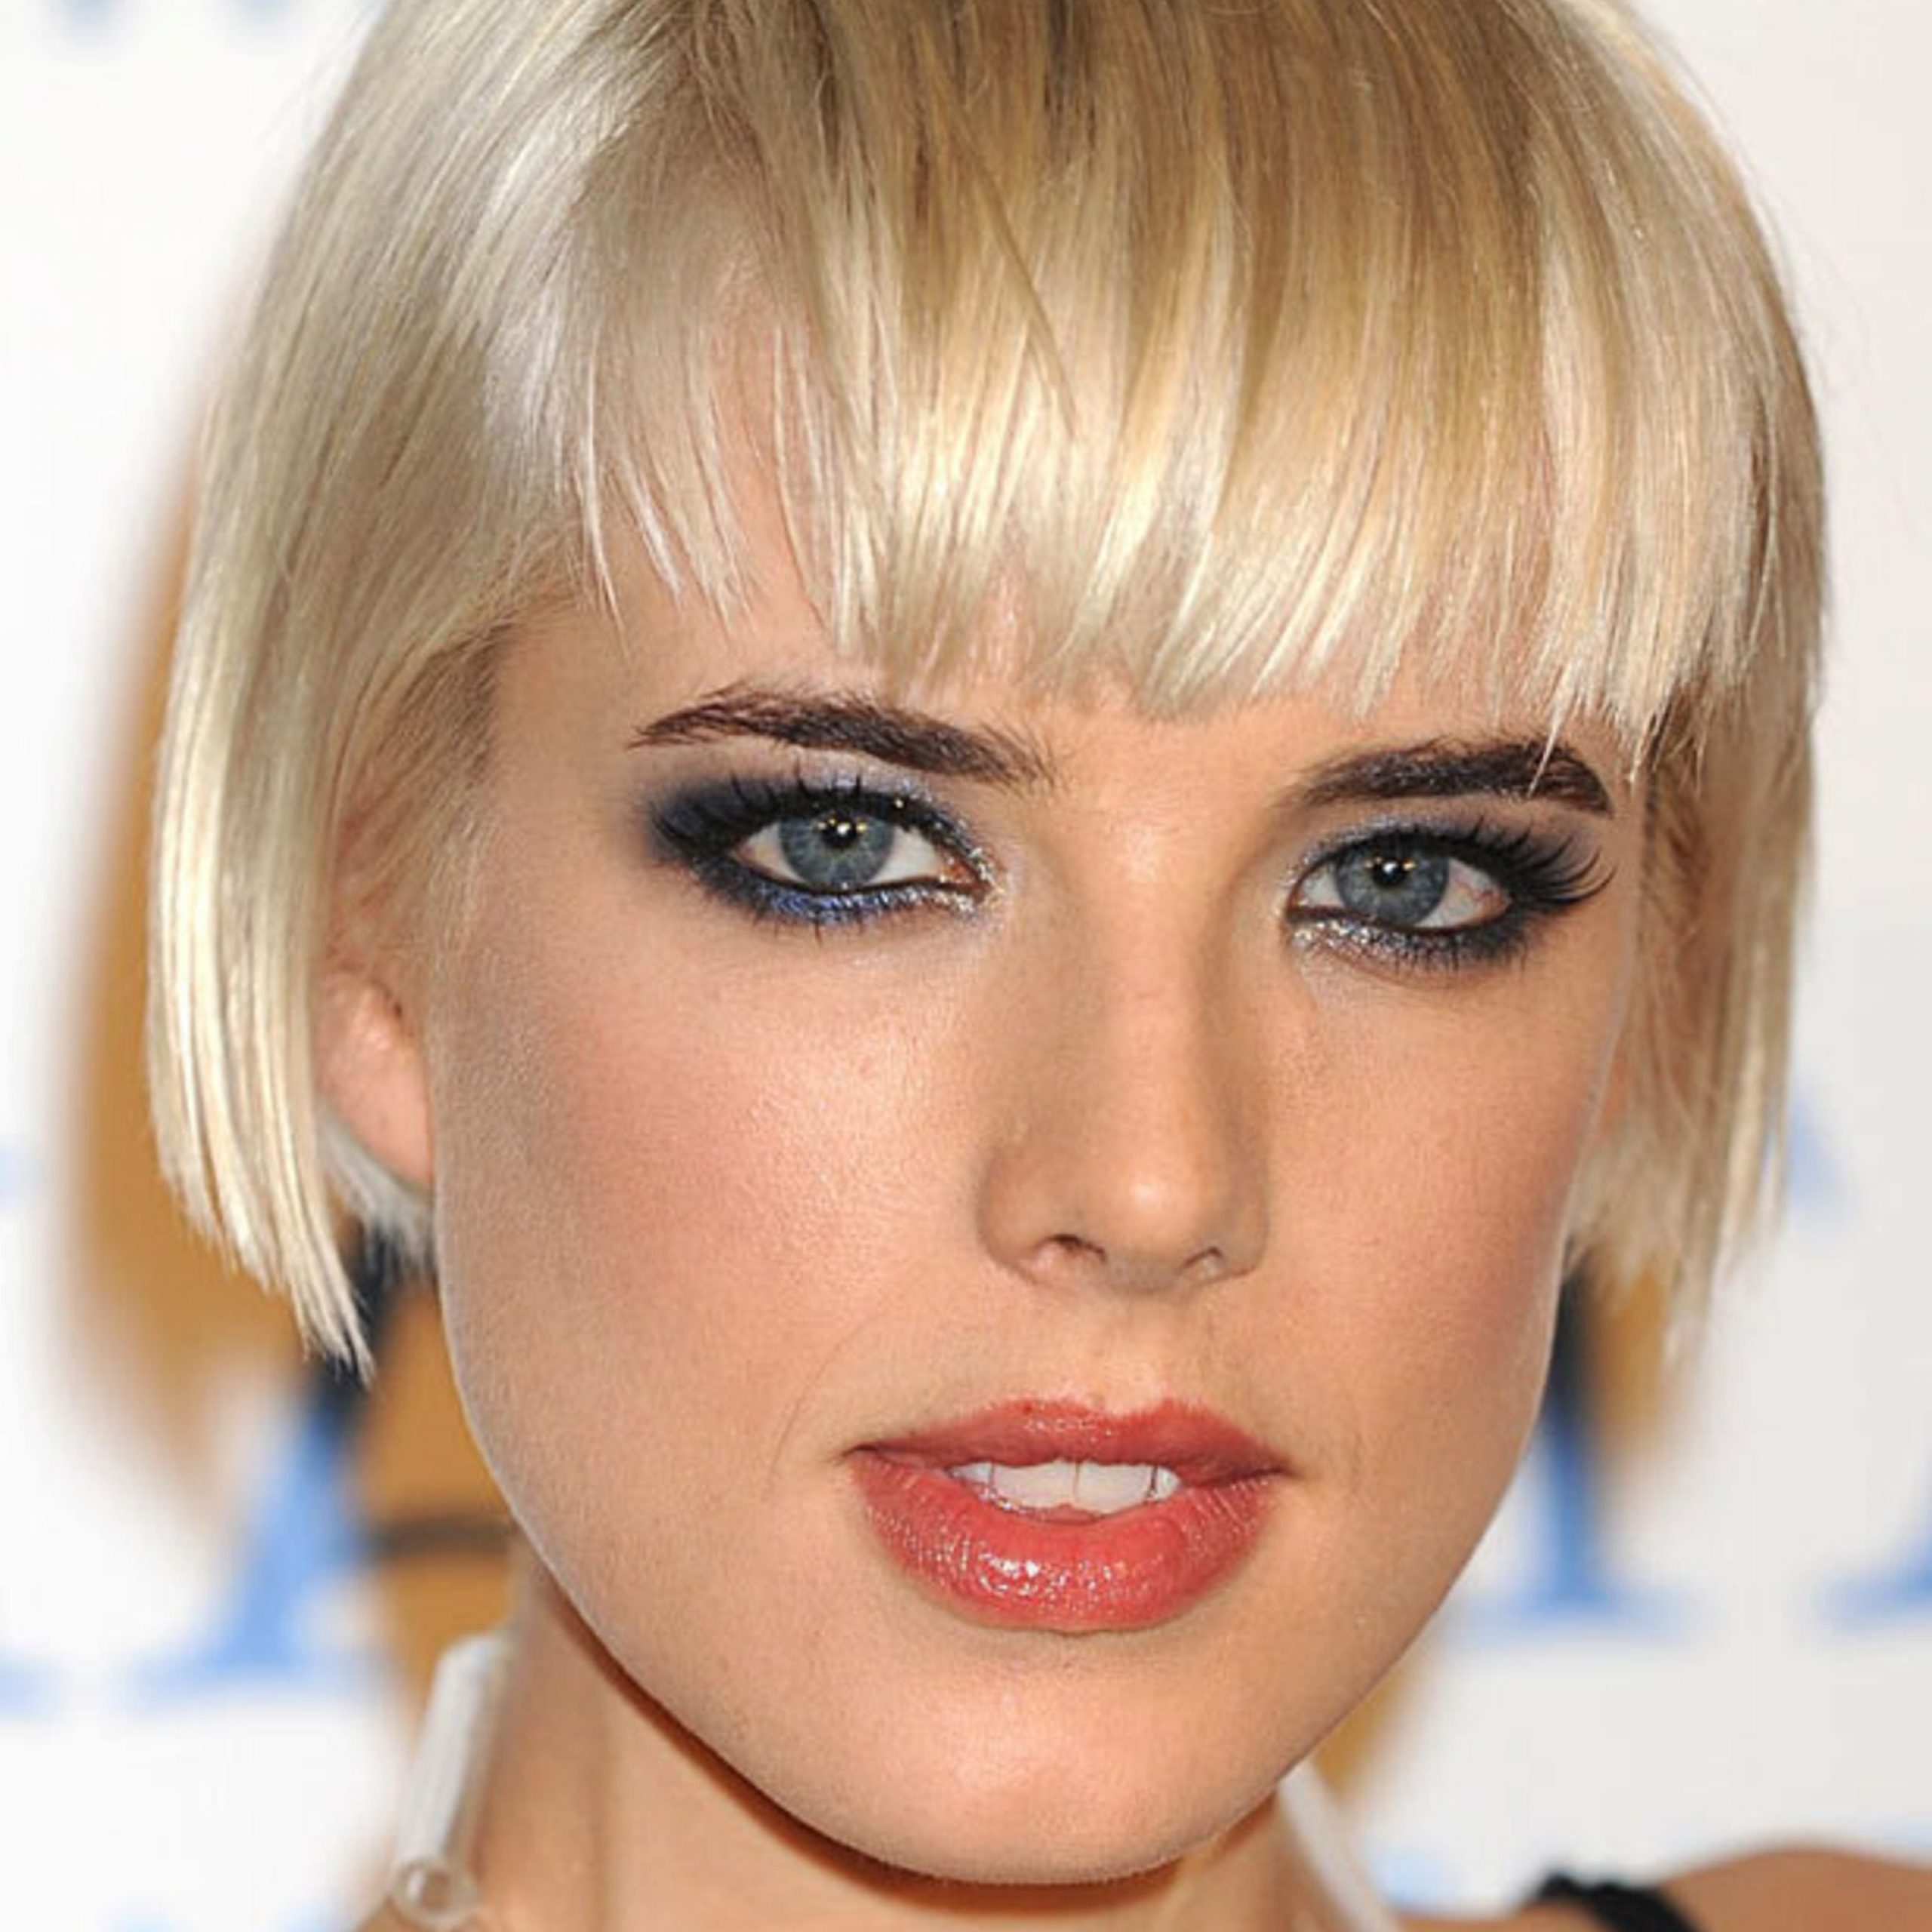 47 Bob Hairstyles For 2019 – Bob Haircuts To Copy This Year Within Short Bob Hairstyles With Cropped Bangs (View 14 of 20)